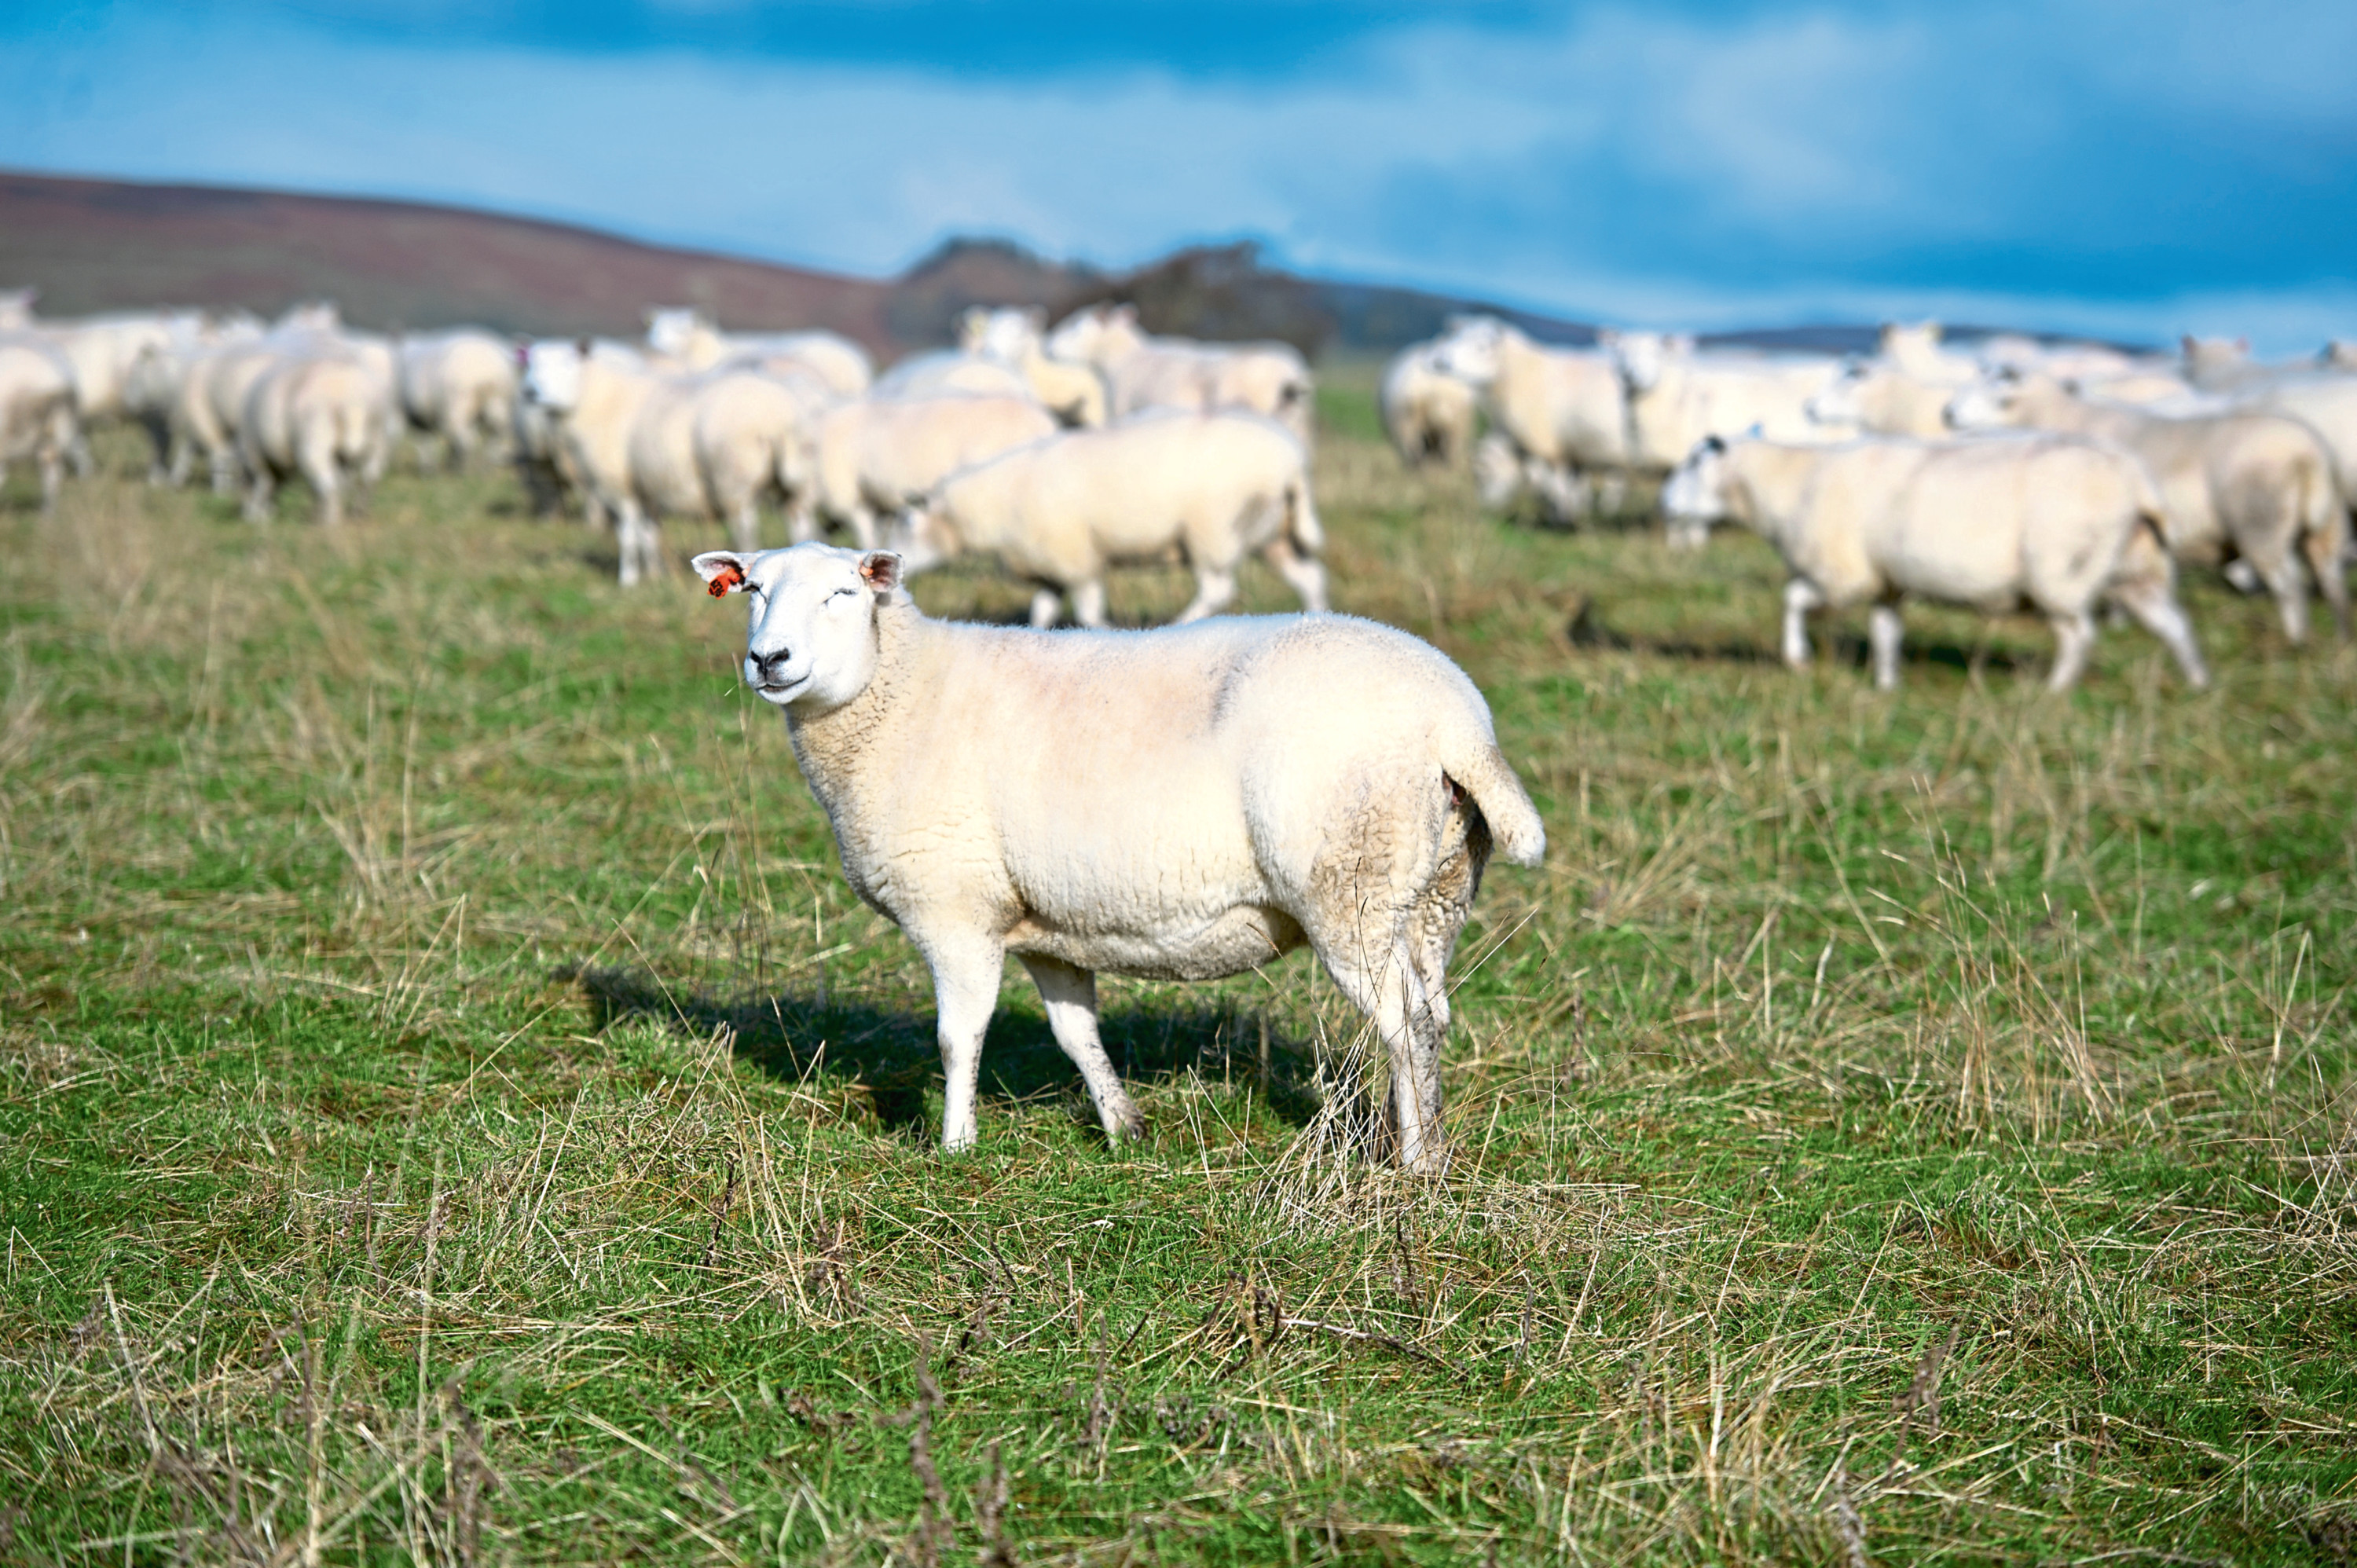 Peter Chapman praised the opportunity for more power for police officers around livestock worrying